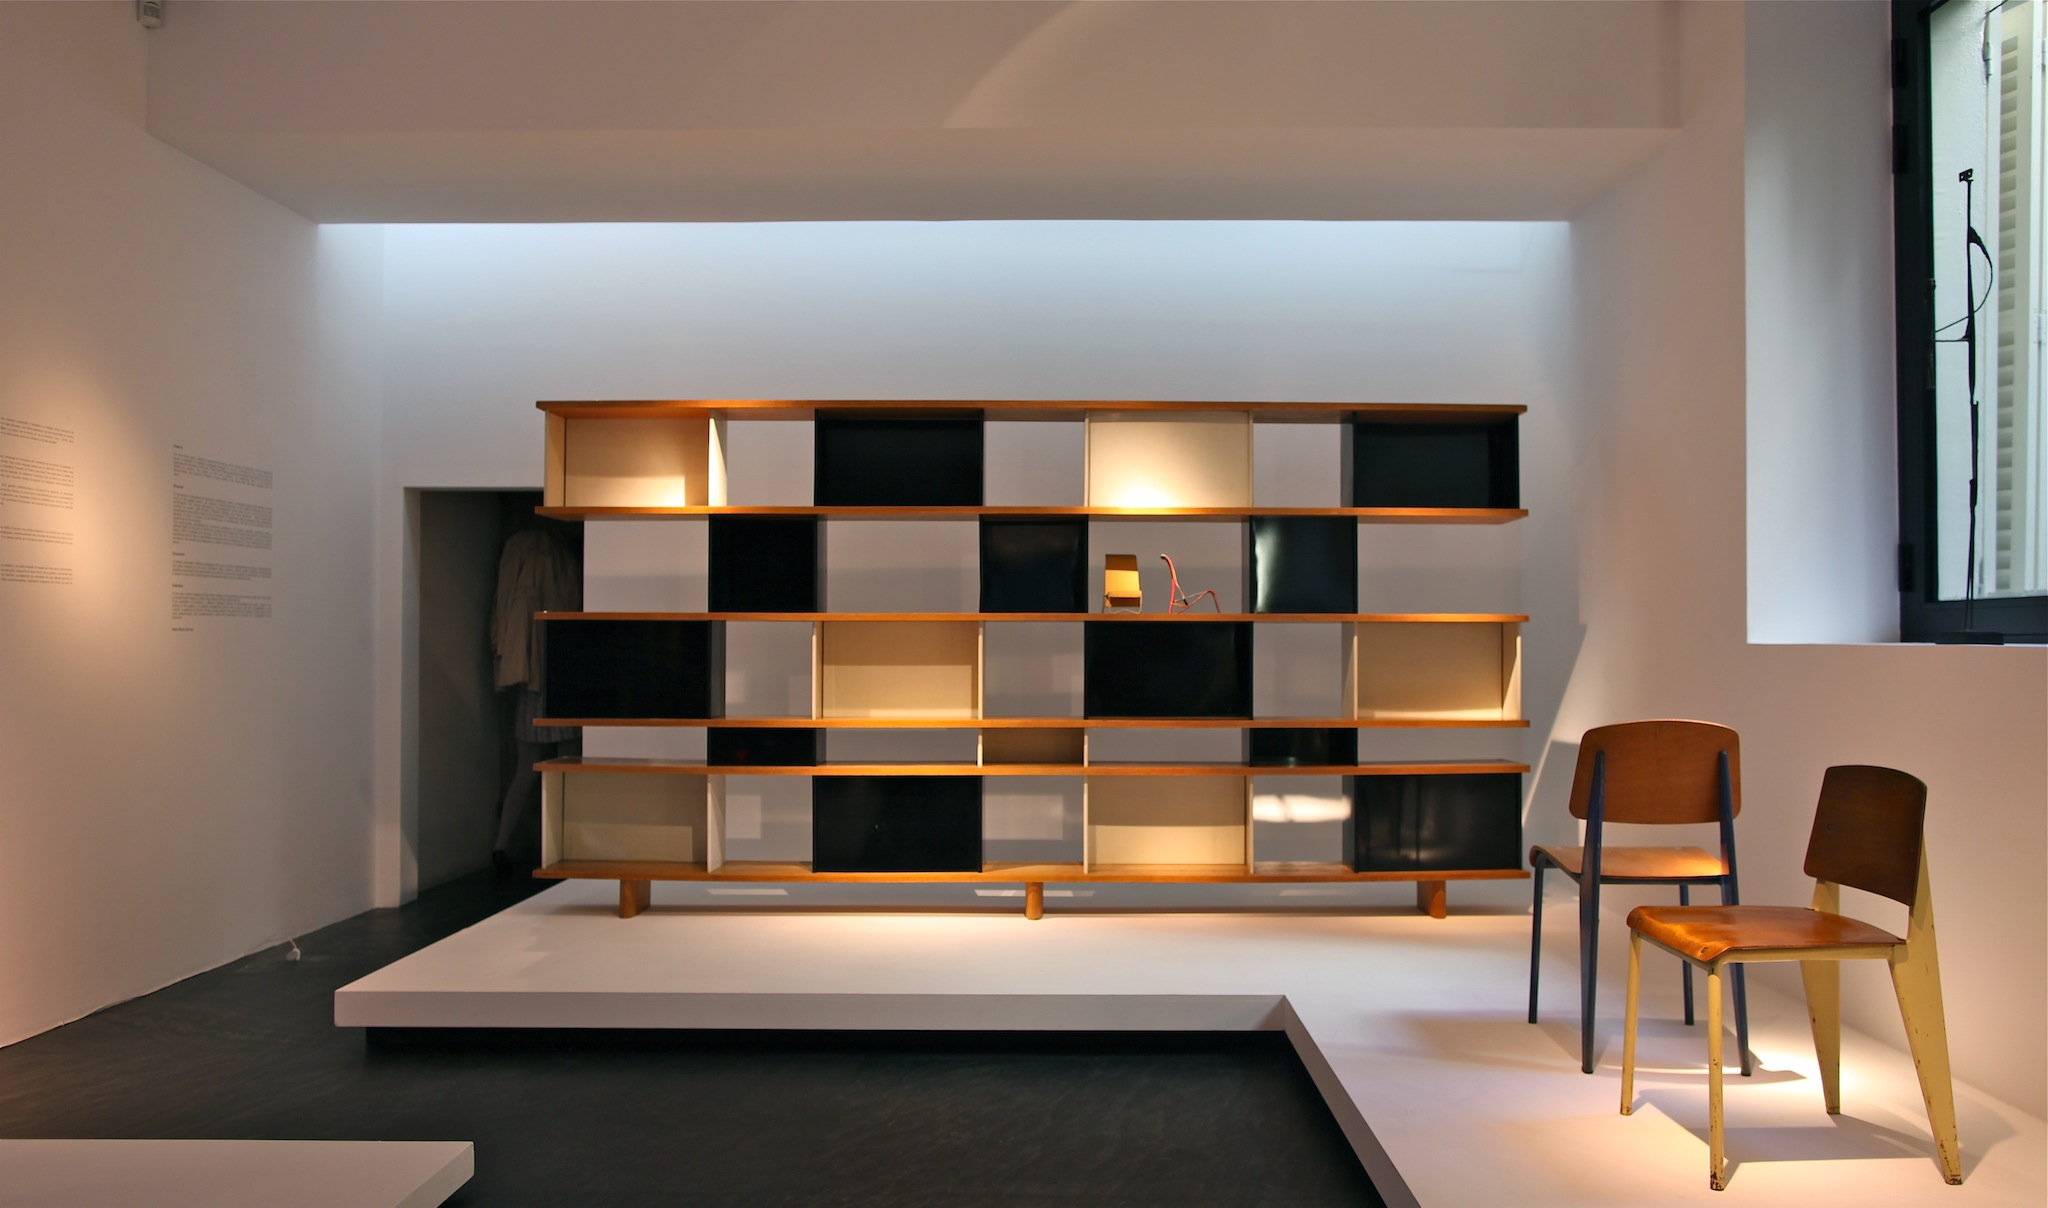 bahut charlotte perriand the good old dayz. Black Bedroom Furniture Sets. Home Design Ideas